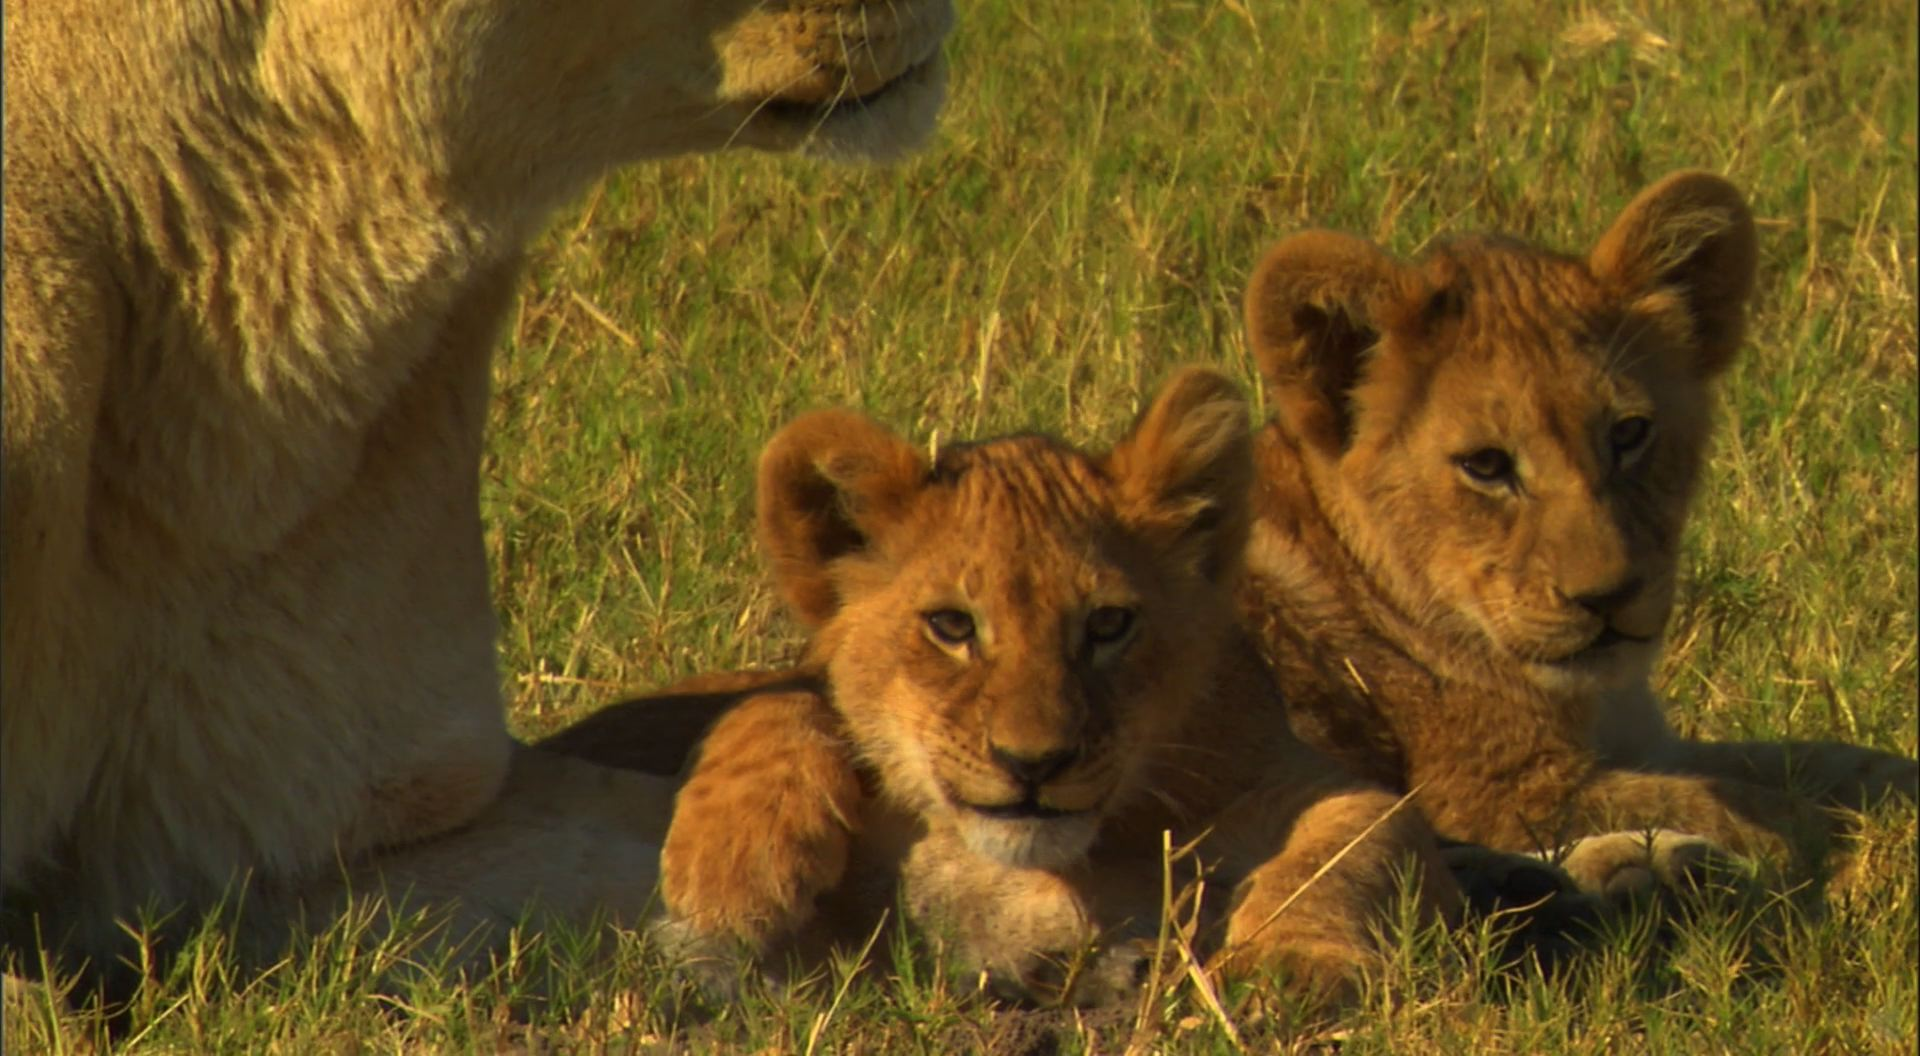 Lioness with her cub